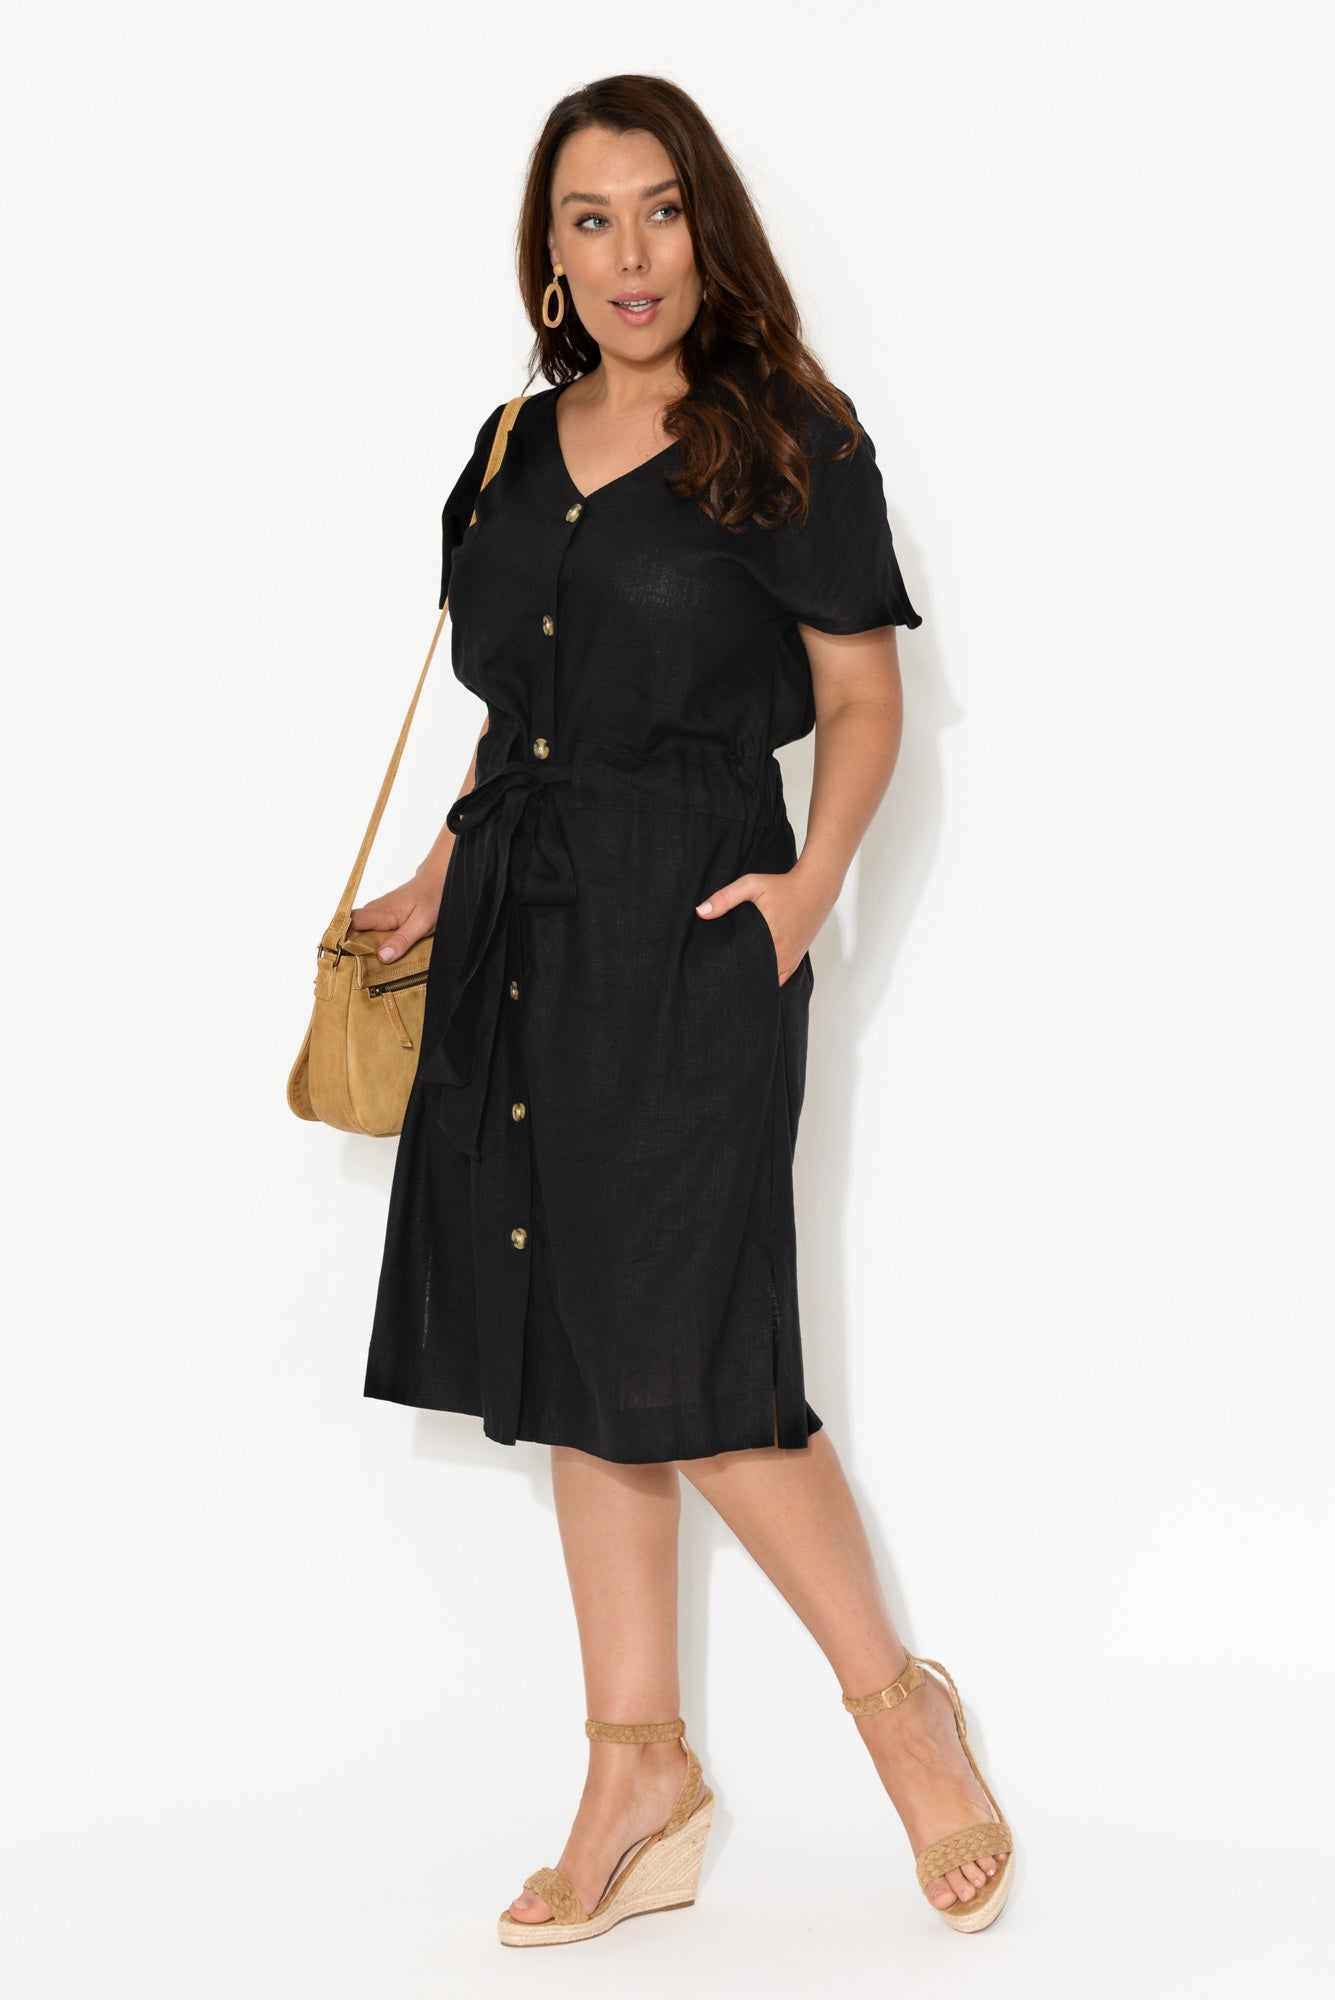 Chloe Black Button Midi Dress